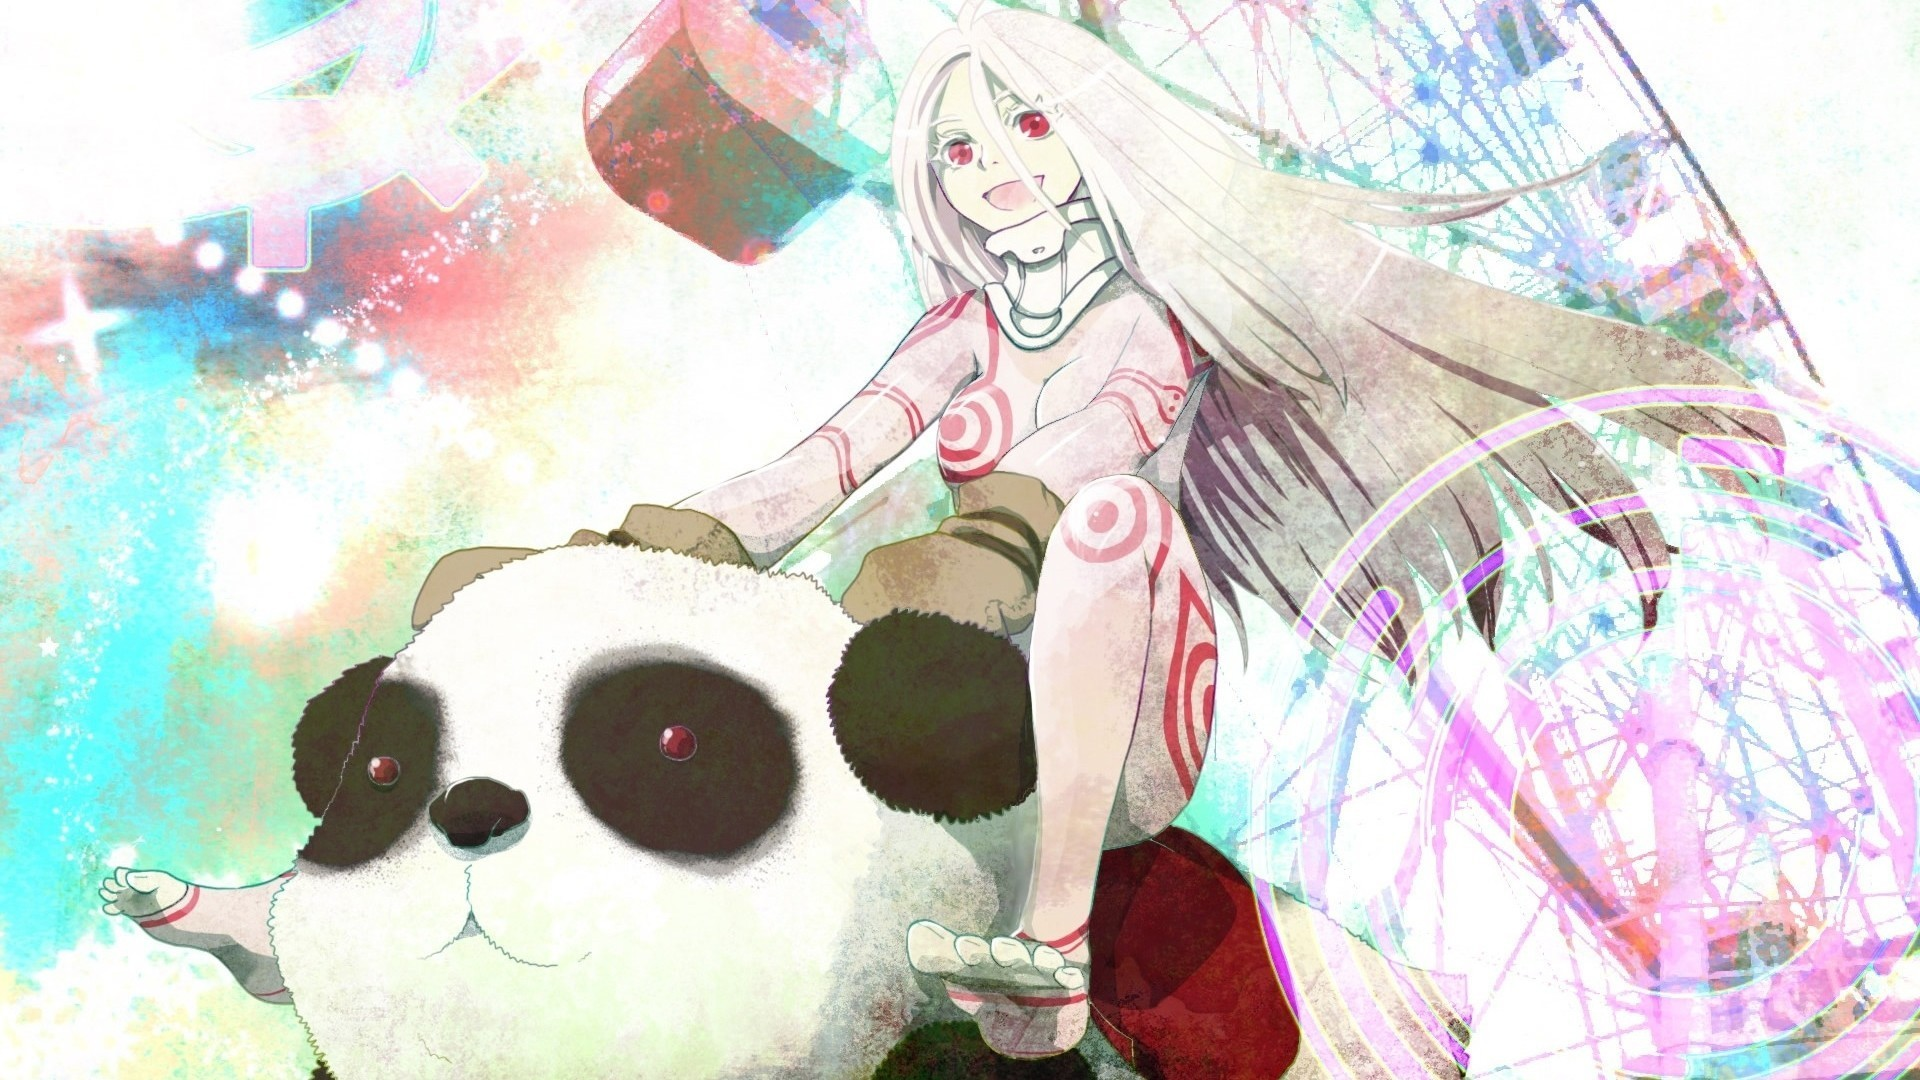 1920x1080 Deadman Wonderland, Shiro